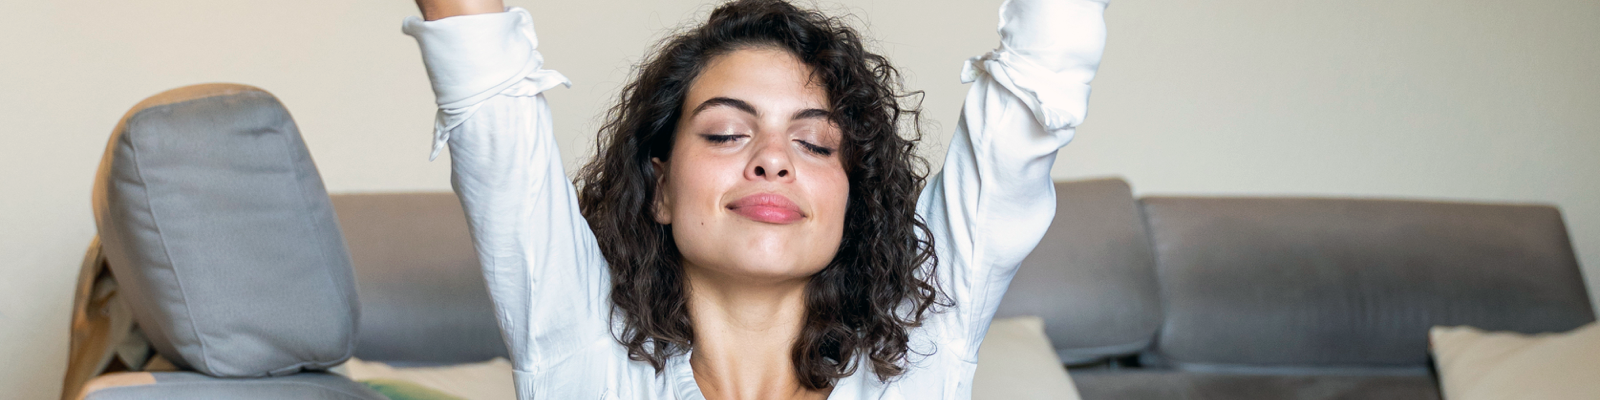 Banner image of a woman smiling with her eyes closed and her arms raised as if she is stretching.